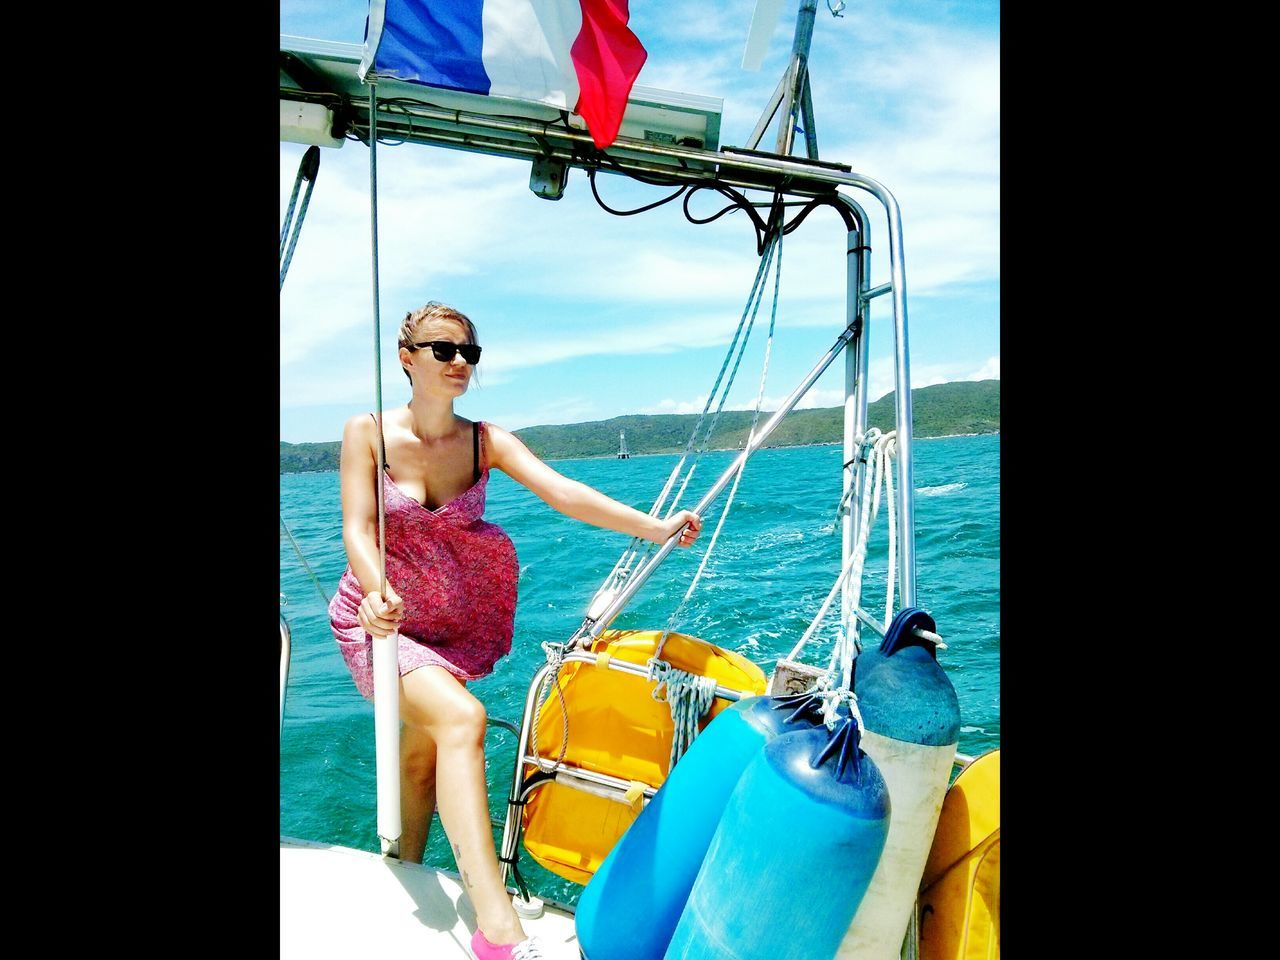 Full Length Of Young Woman On Boat At Sea